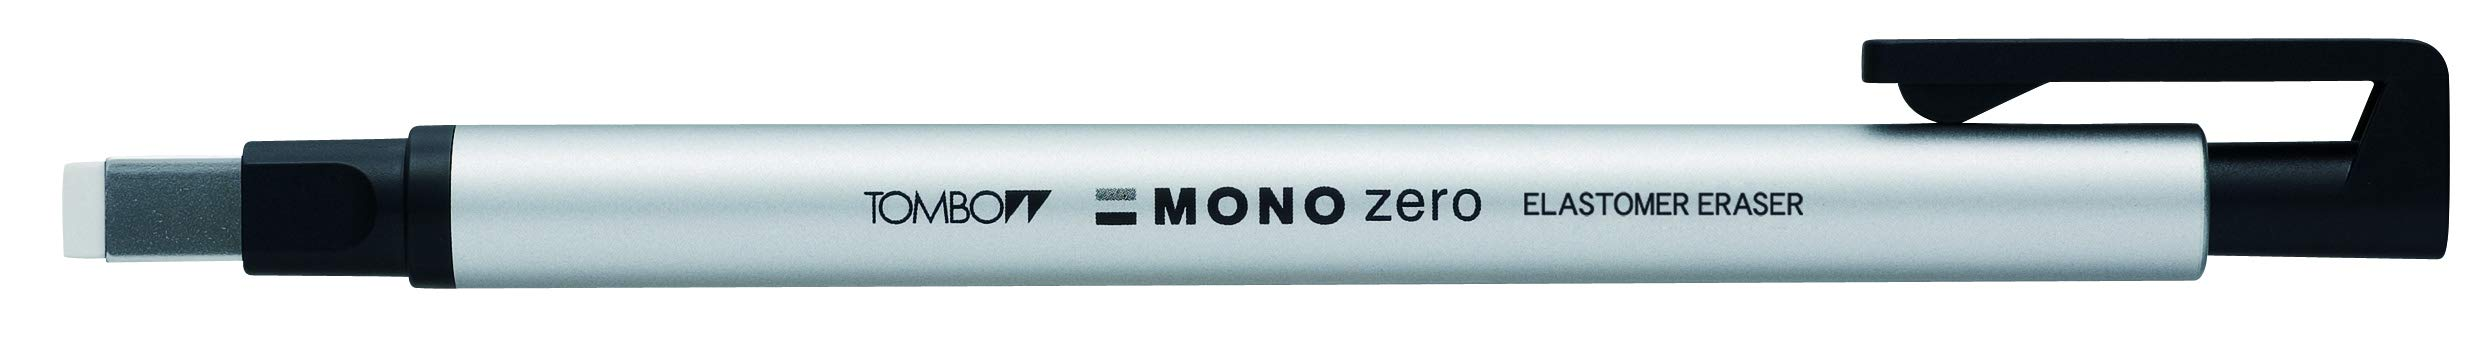 Tombow Holder Eraser, Mono Zero Square Shaper, Silver (EH-KUS04)